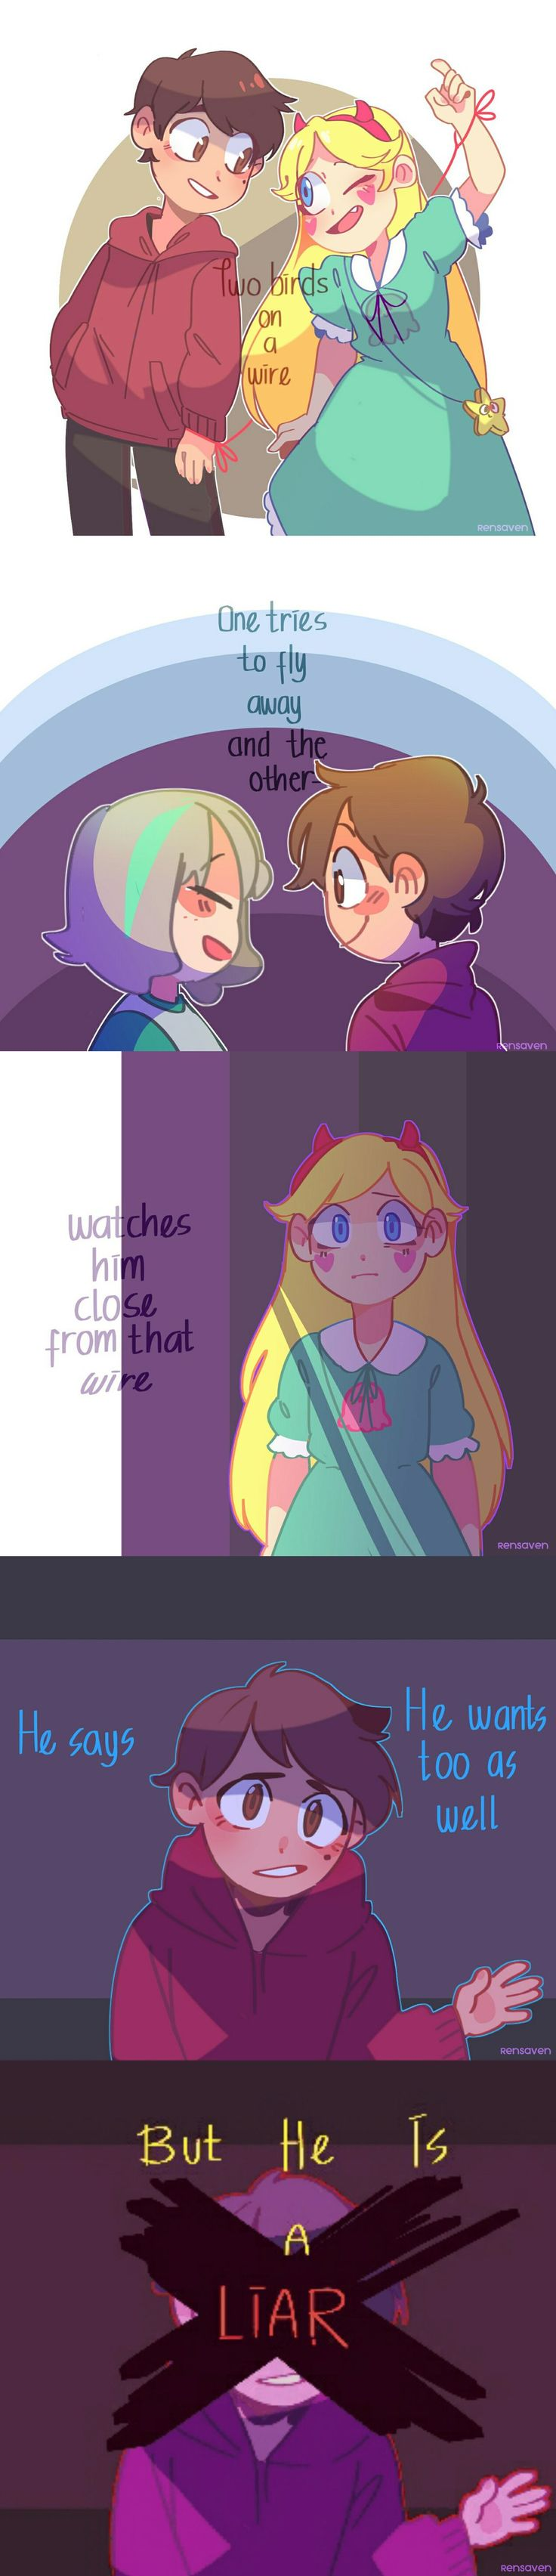 Star vs The Forces of Evil by Rensaven